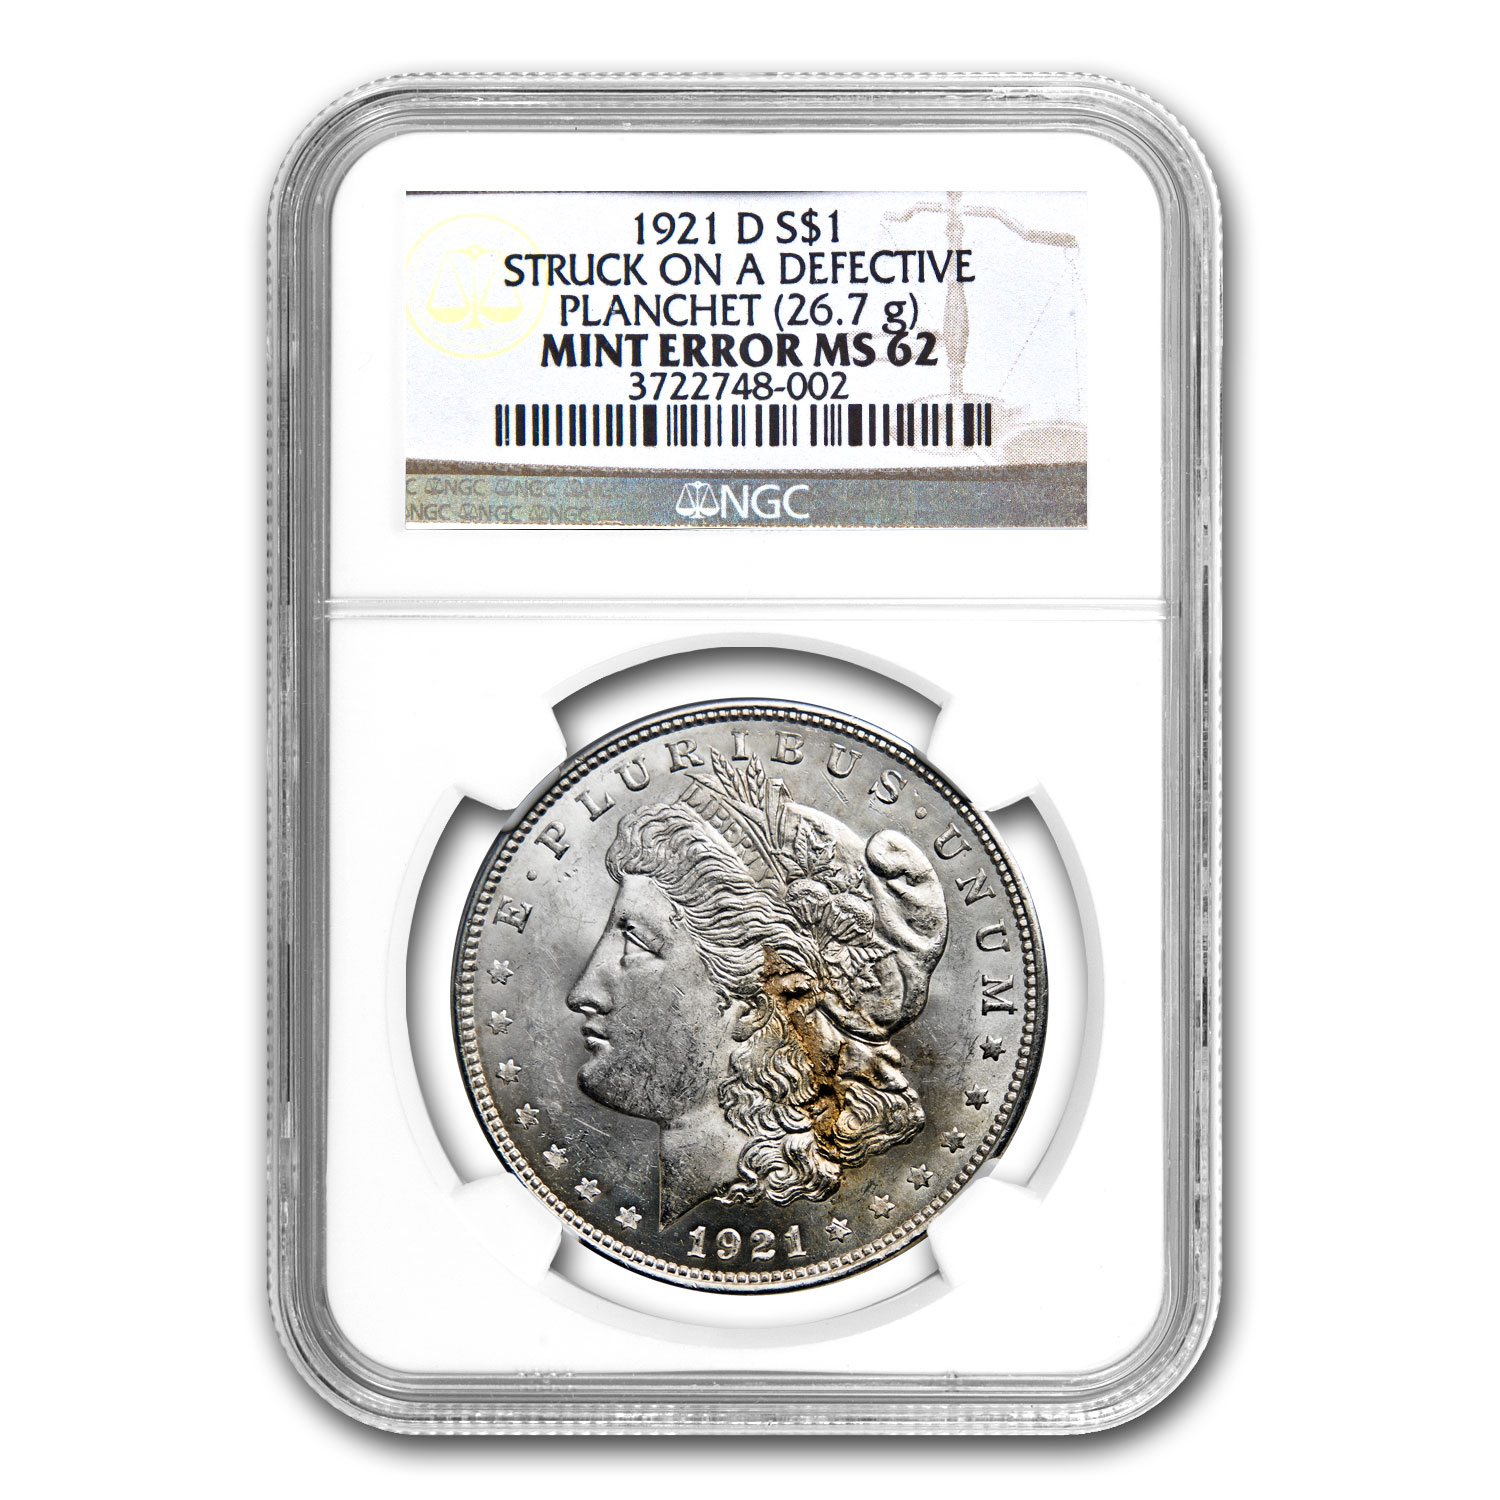 1921 Morgan Dollar - MS-62 NGC (Defective Planchet Mint Error)